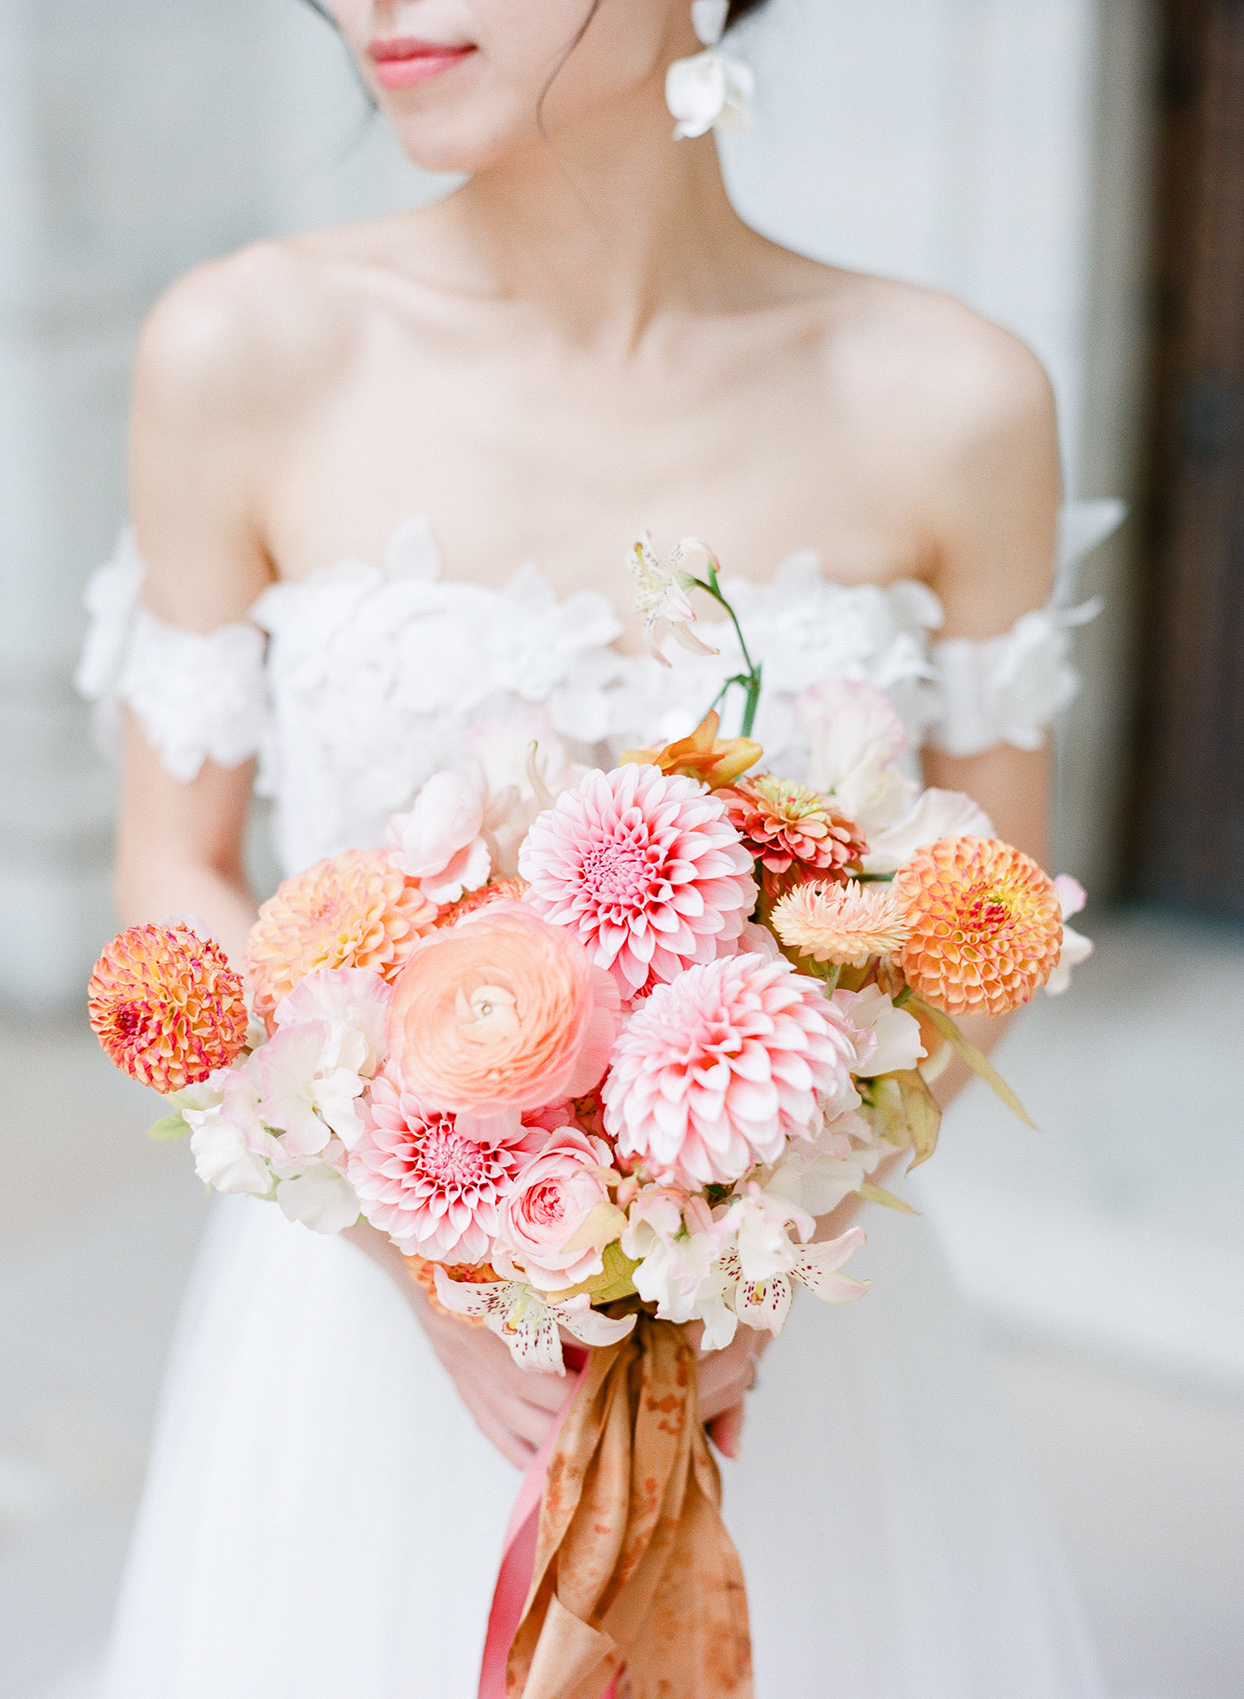 pastel pink and orange floral bouquet in bride's hands